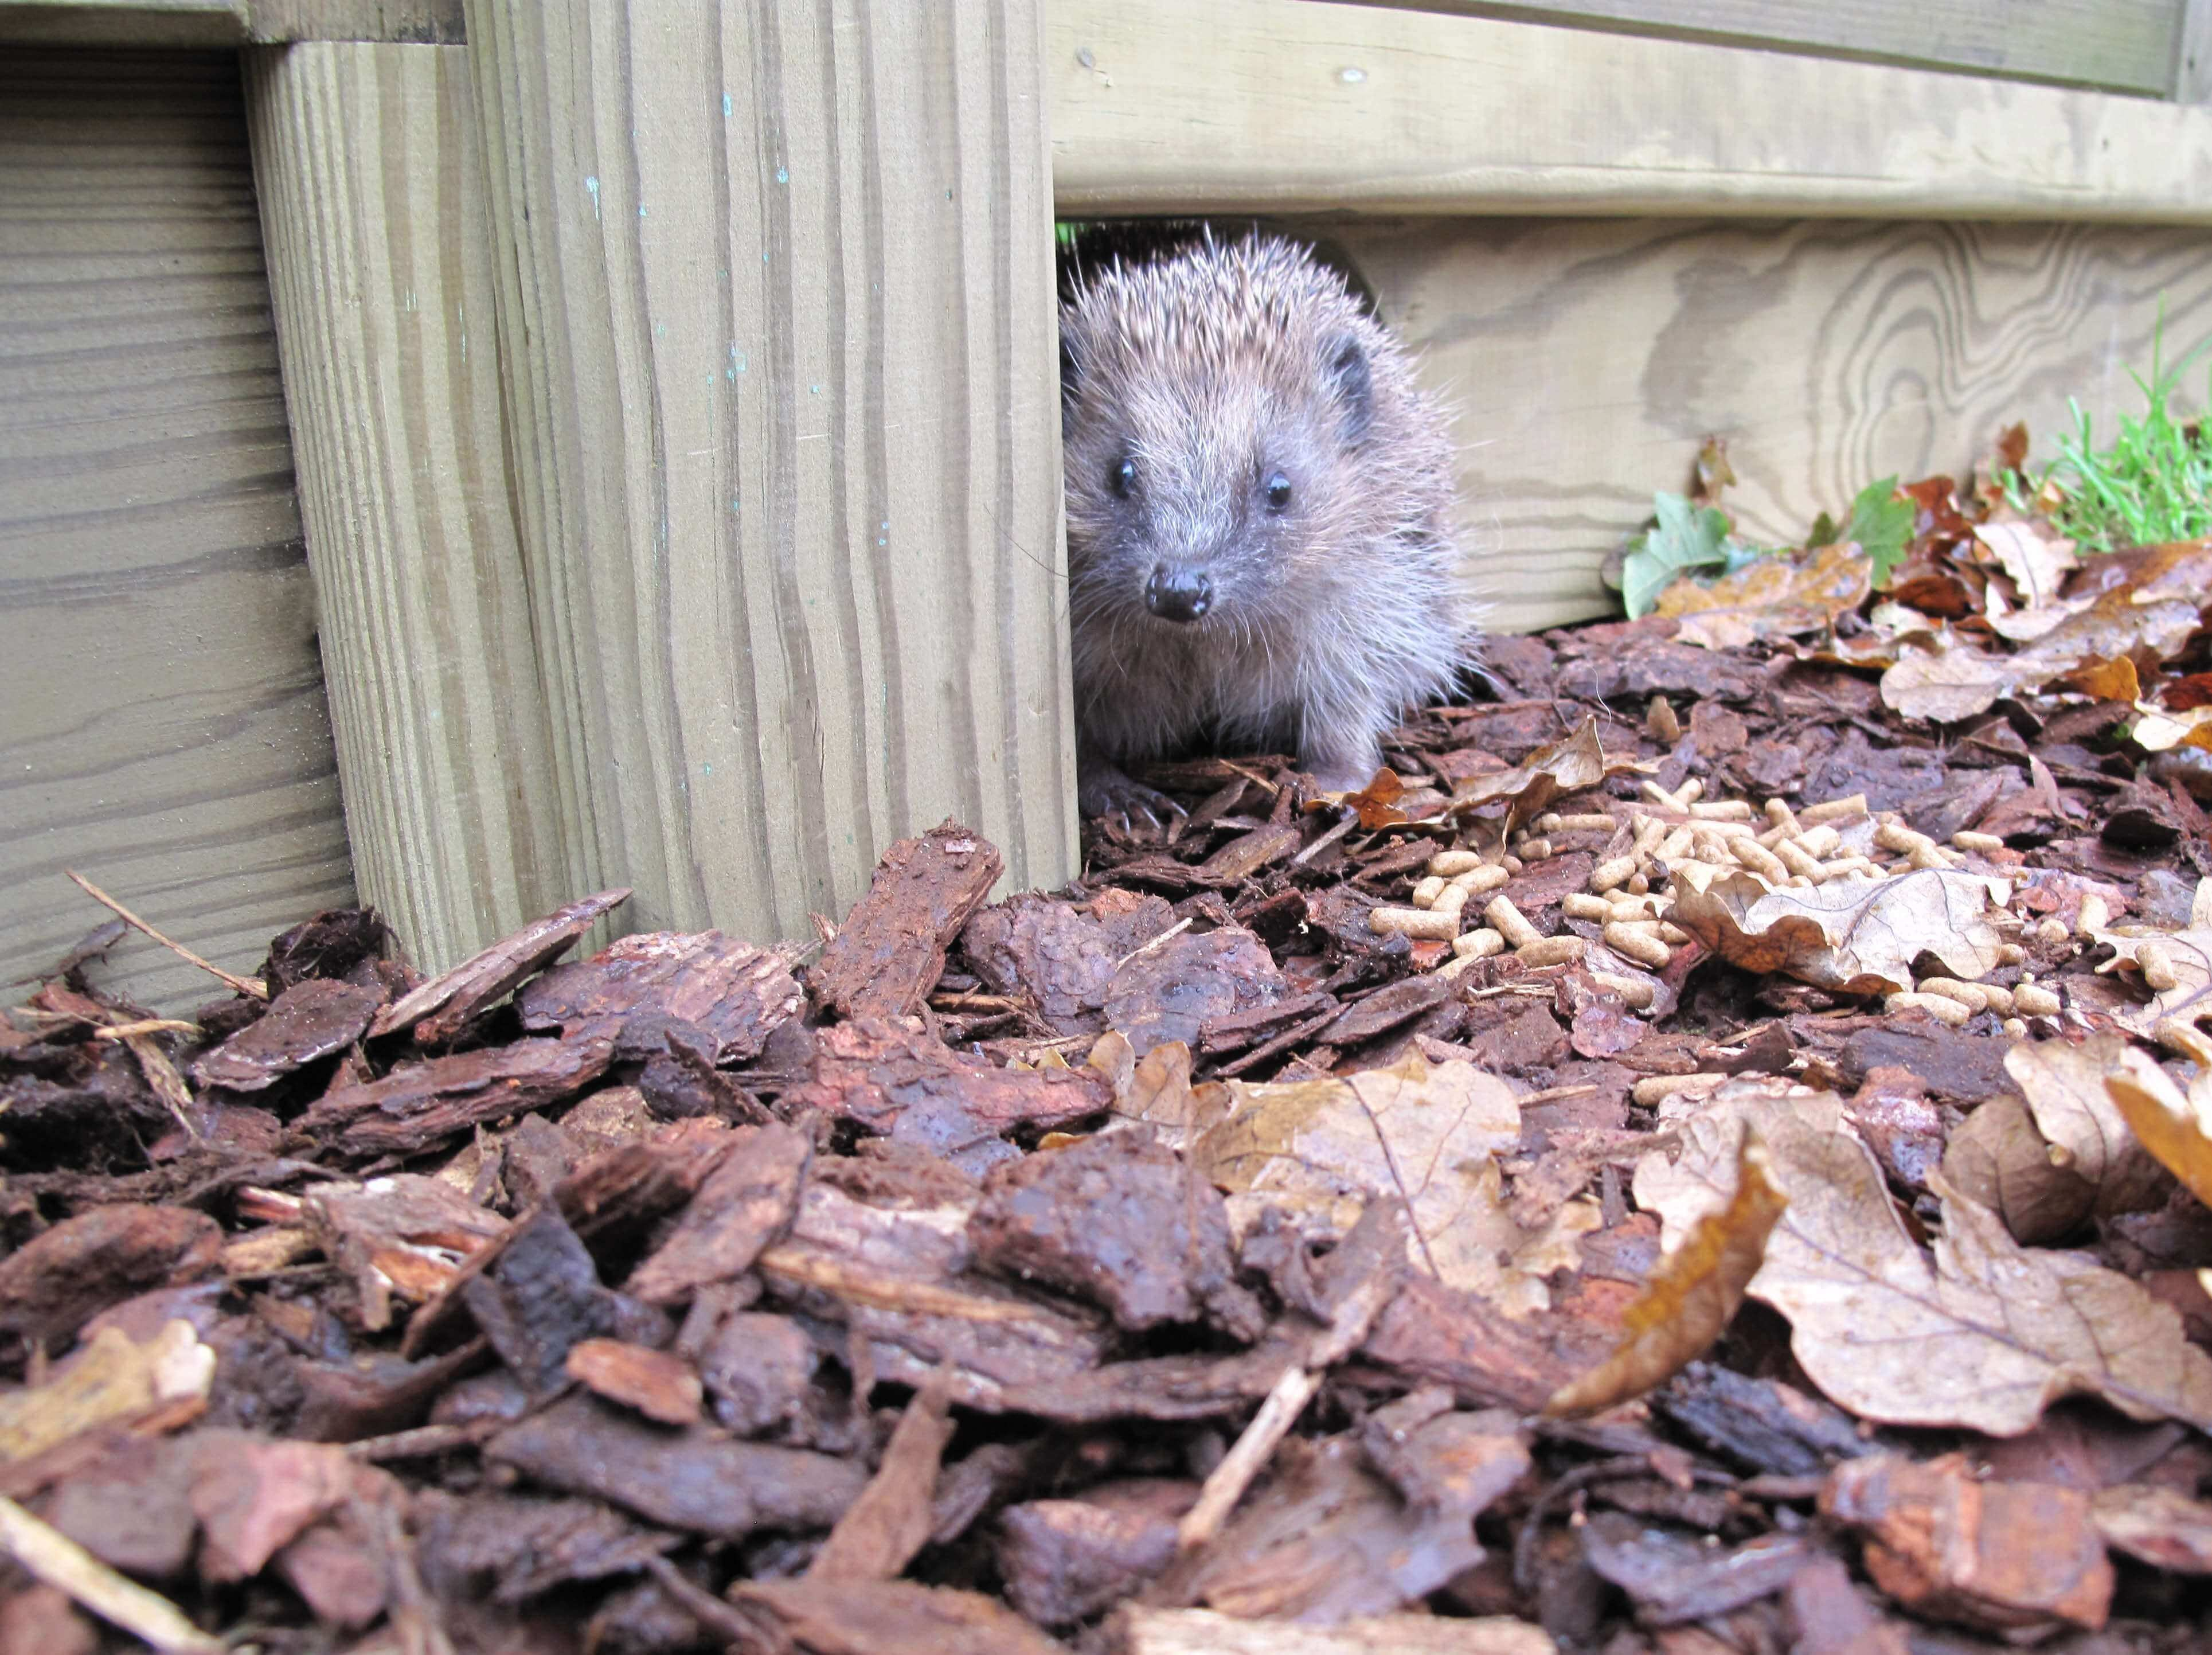 Gravel boards for hedgehogs